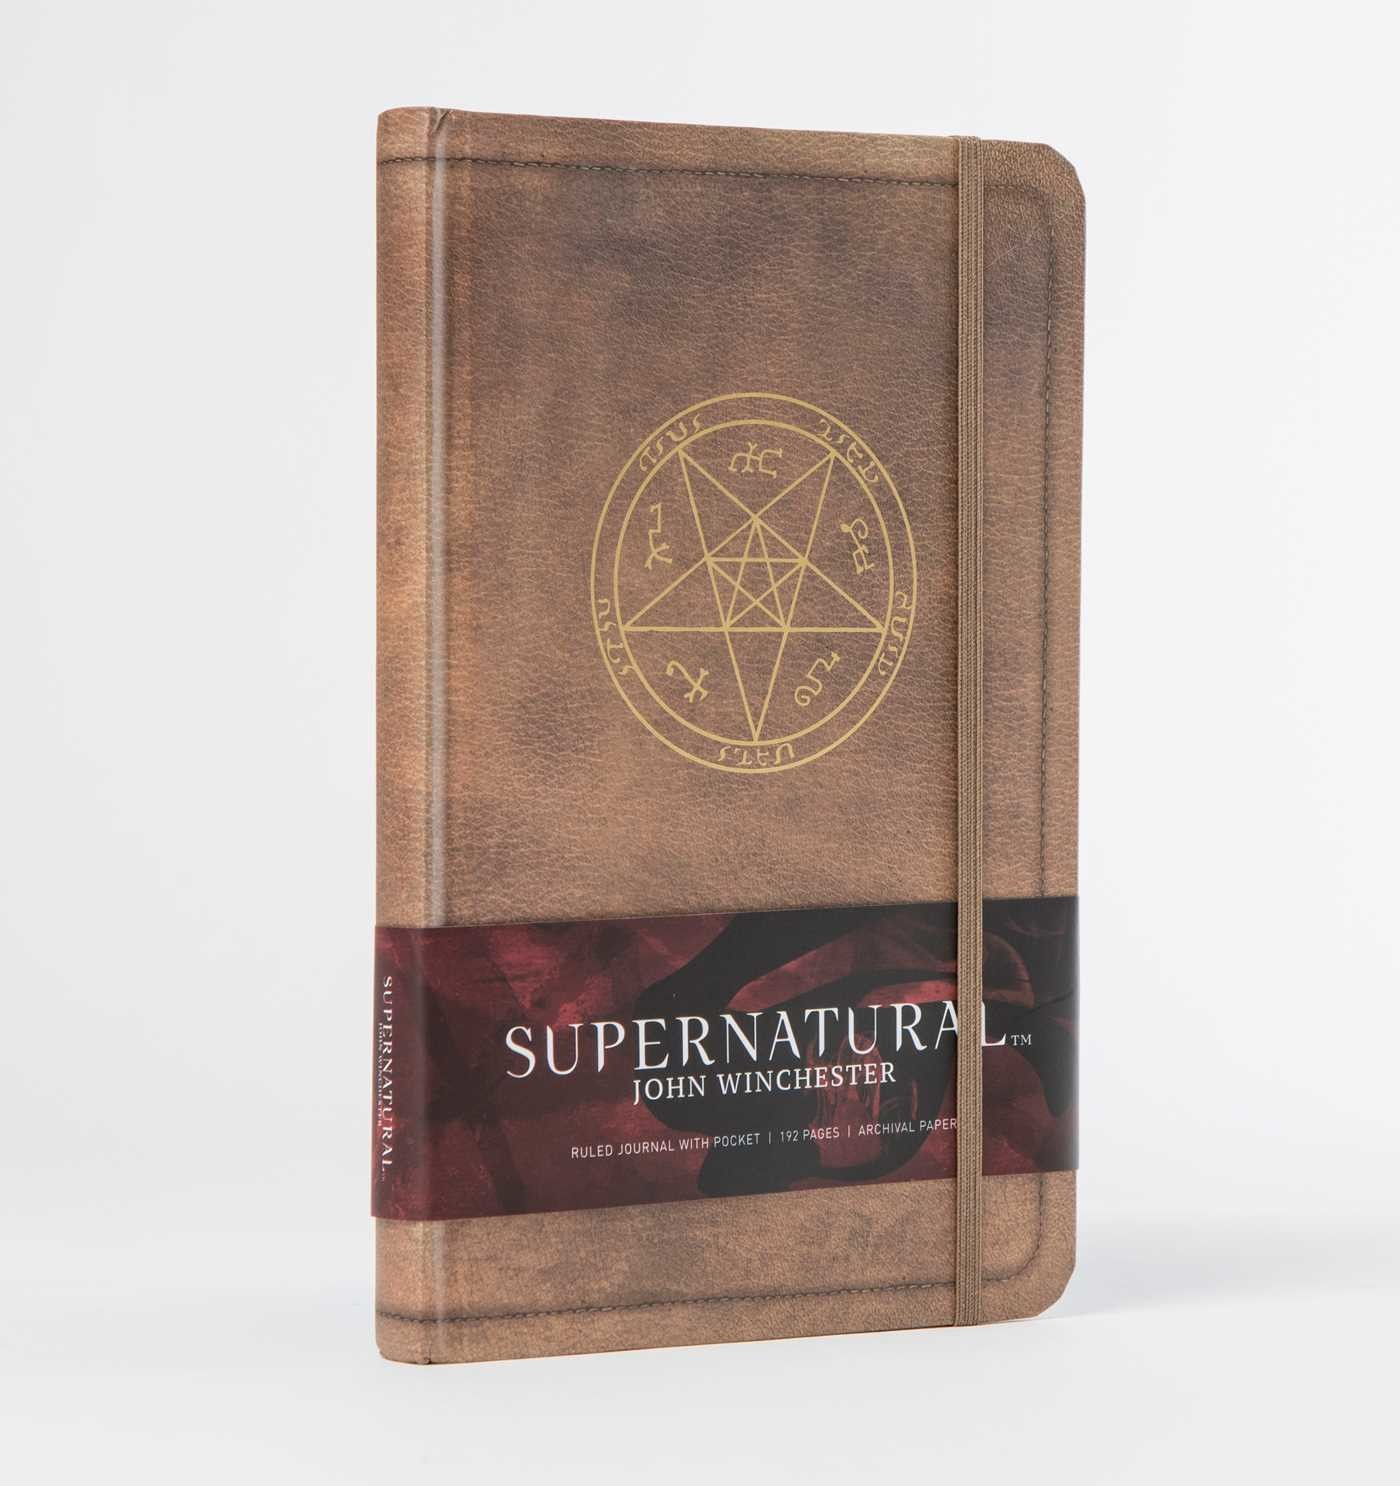 Supernatural john winchester hardcover ruled journal 9781683830740.in04